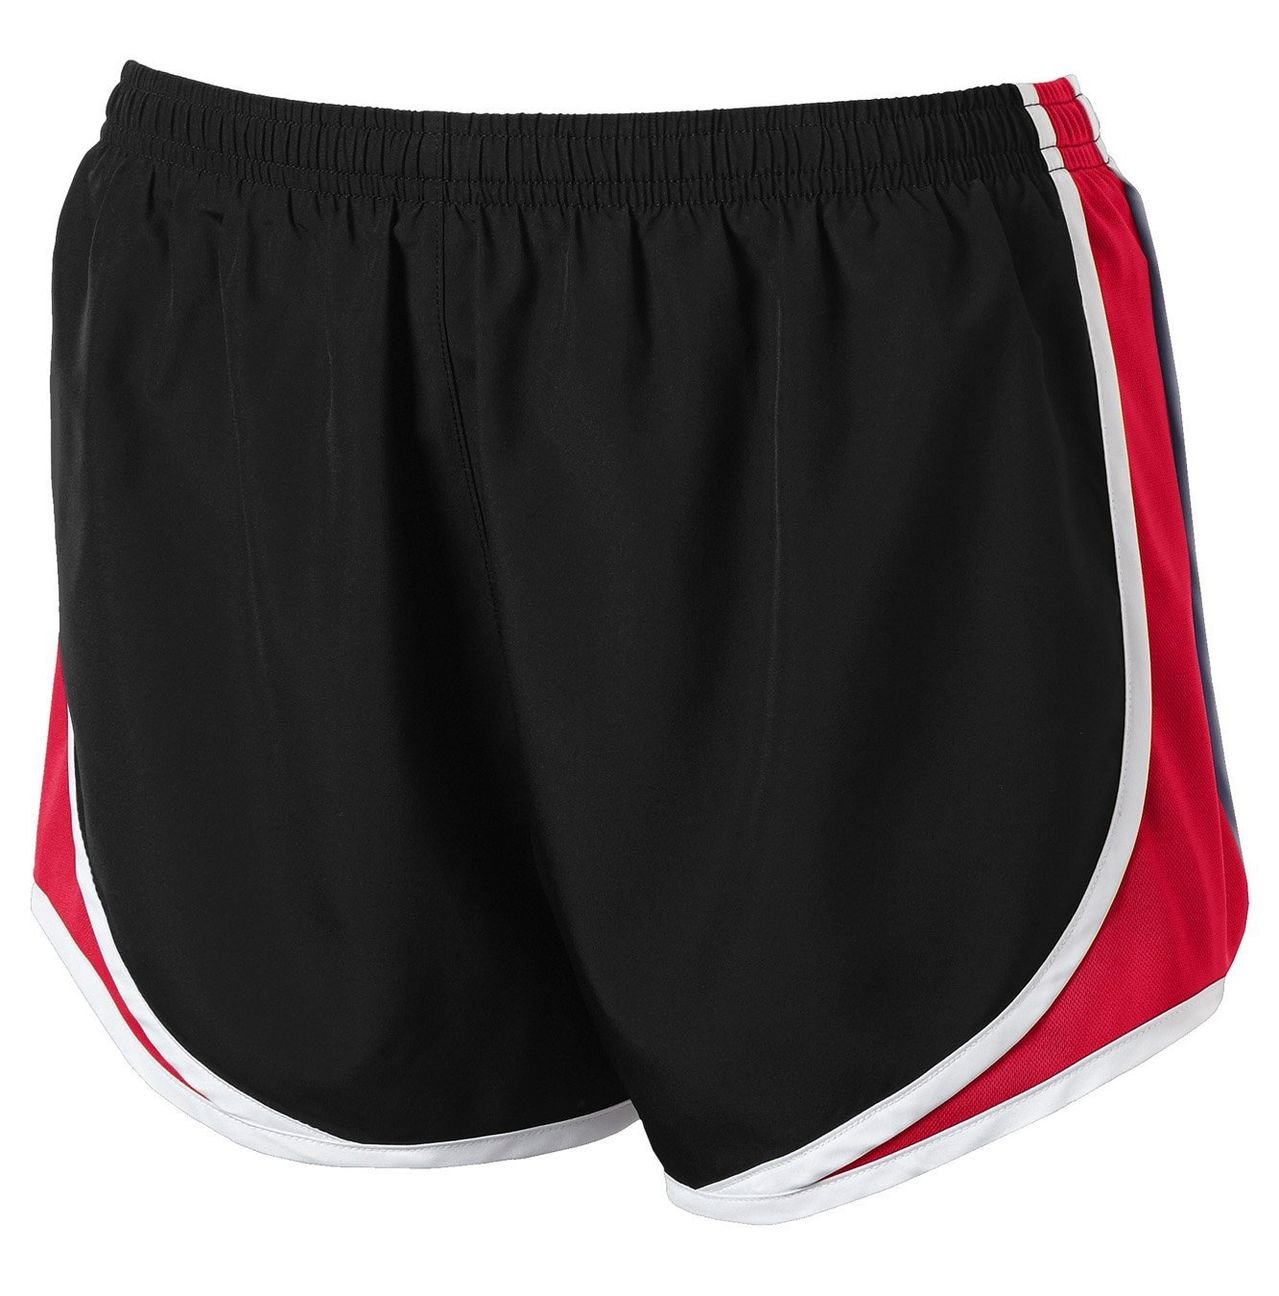 Clothe Co. Ladies Moisture Wicking Sport Running Shorts, Black/True Red/White, S by Clothe Co. (Image #1)